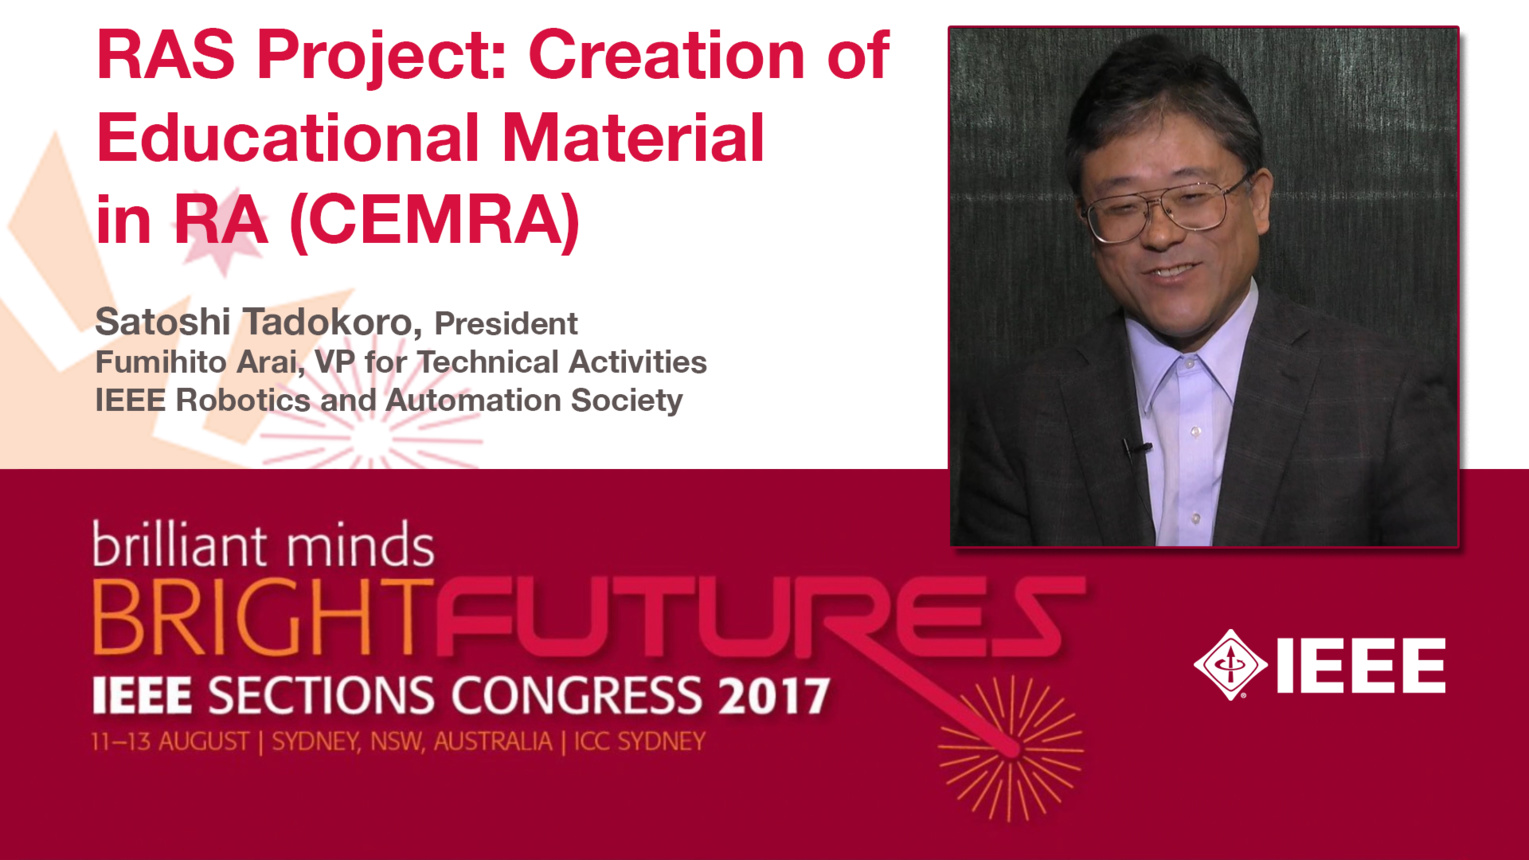 Satoshi Tadokoro: RAS Project - Creation of Educational Material in RA (CEMRA) - Studio Tech Talks: Sections Congress 2017